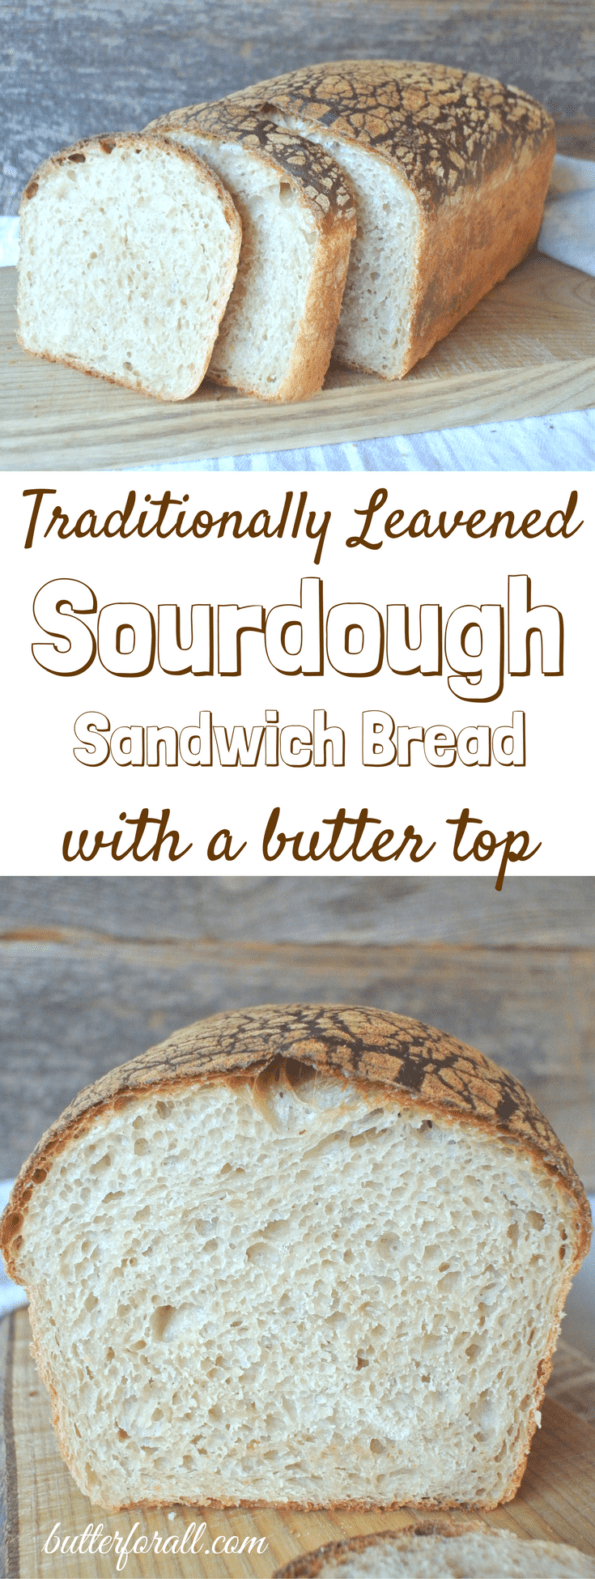 Butter Top Sourdough Sandwich Bread is going to become your new favorite slicing bread. It is great for sandwiches , French toast and more! #realfood #sourdough #nourishingtraditions #wisetraditions #fermented #properlyprepared